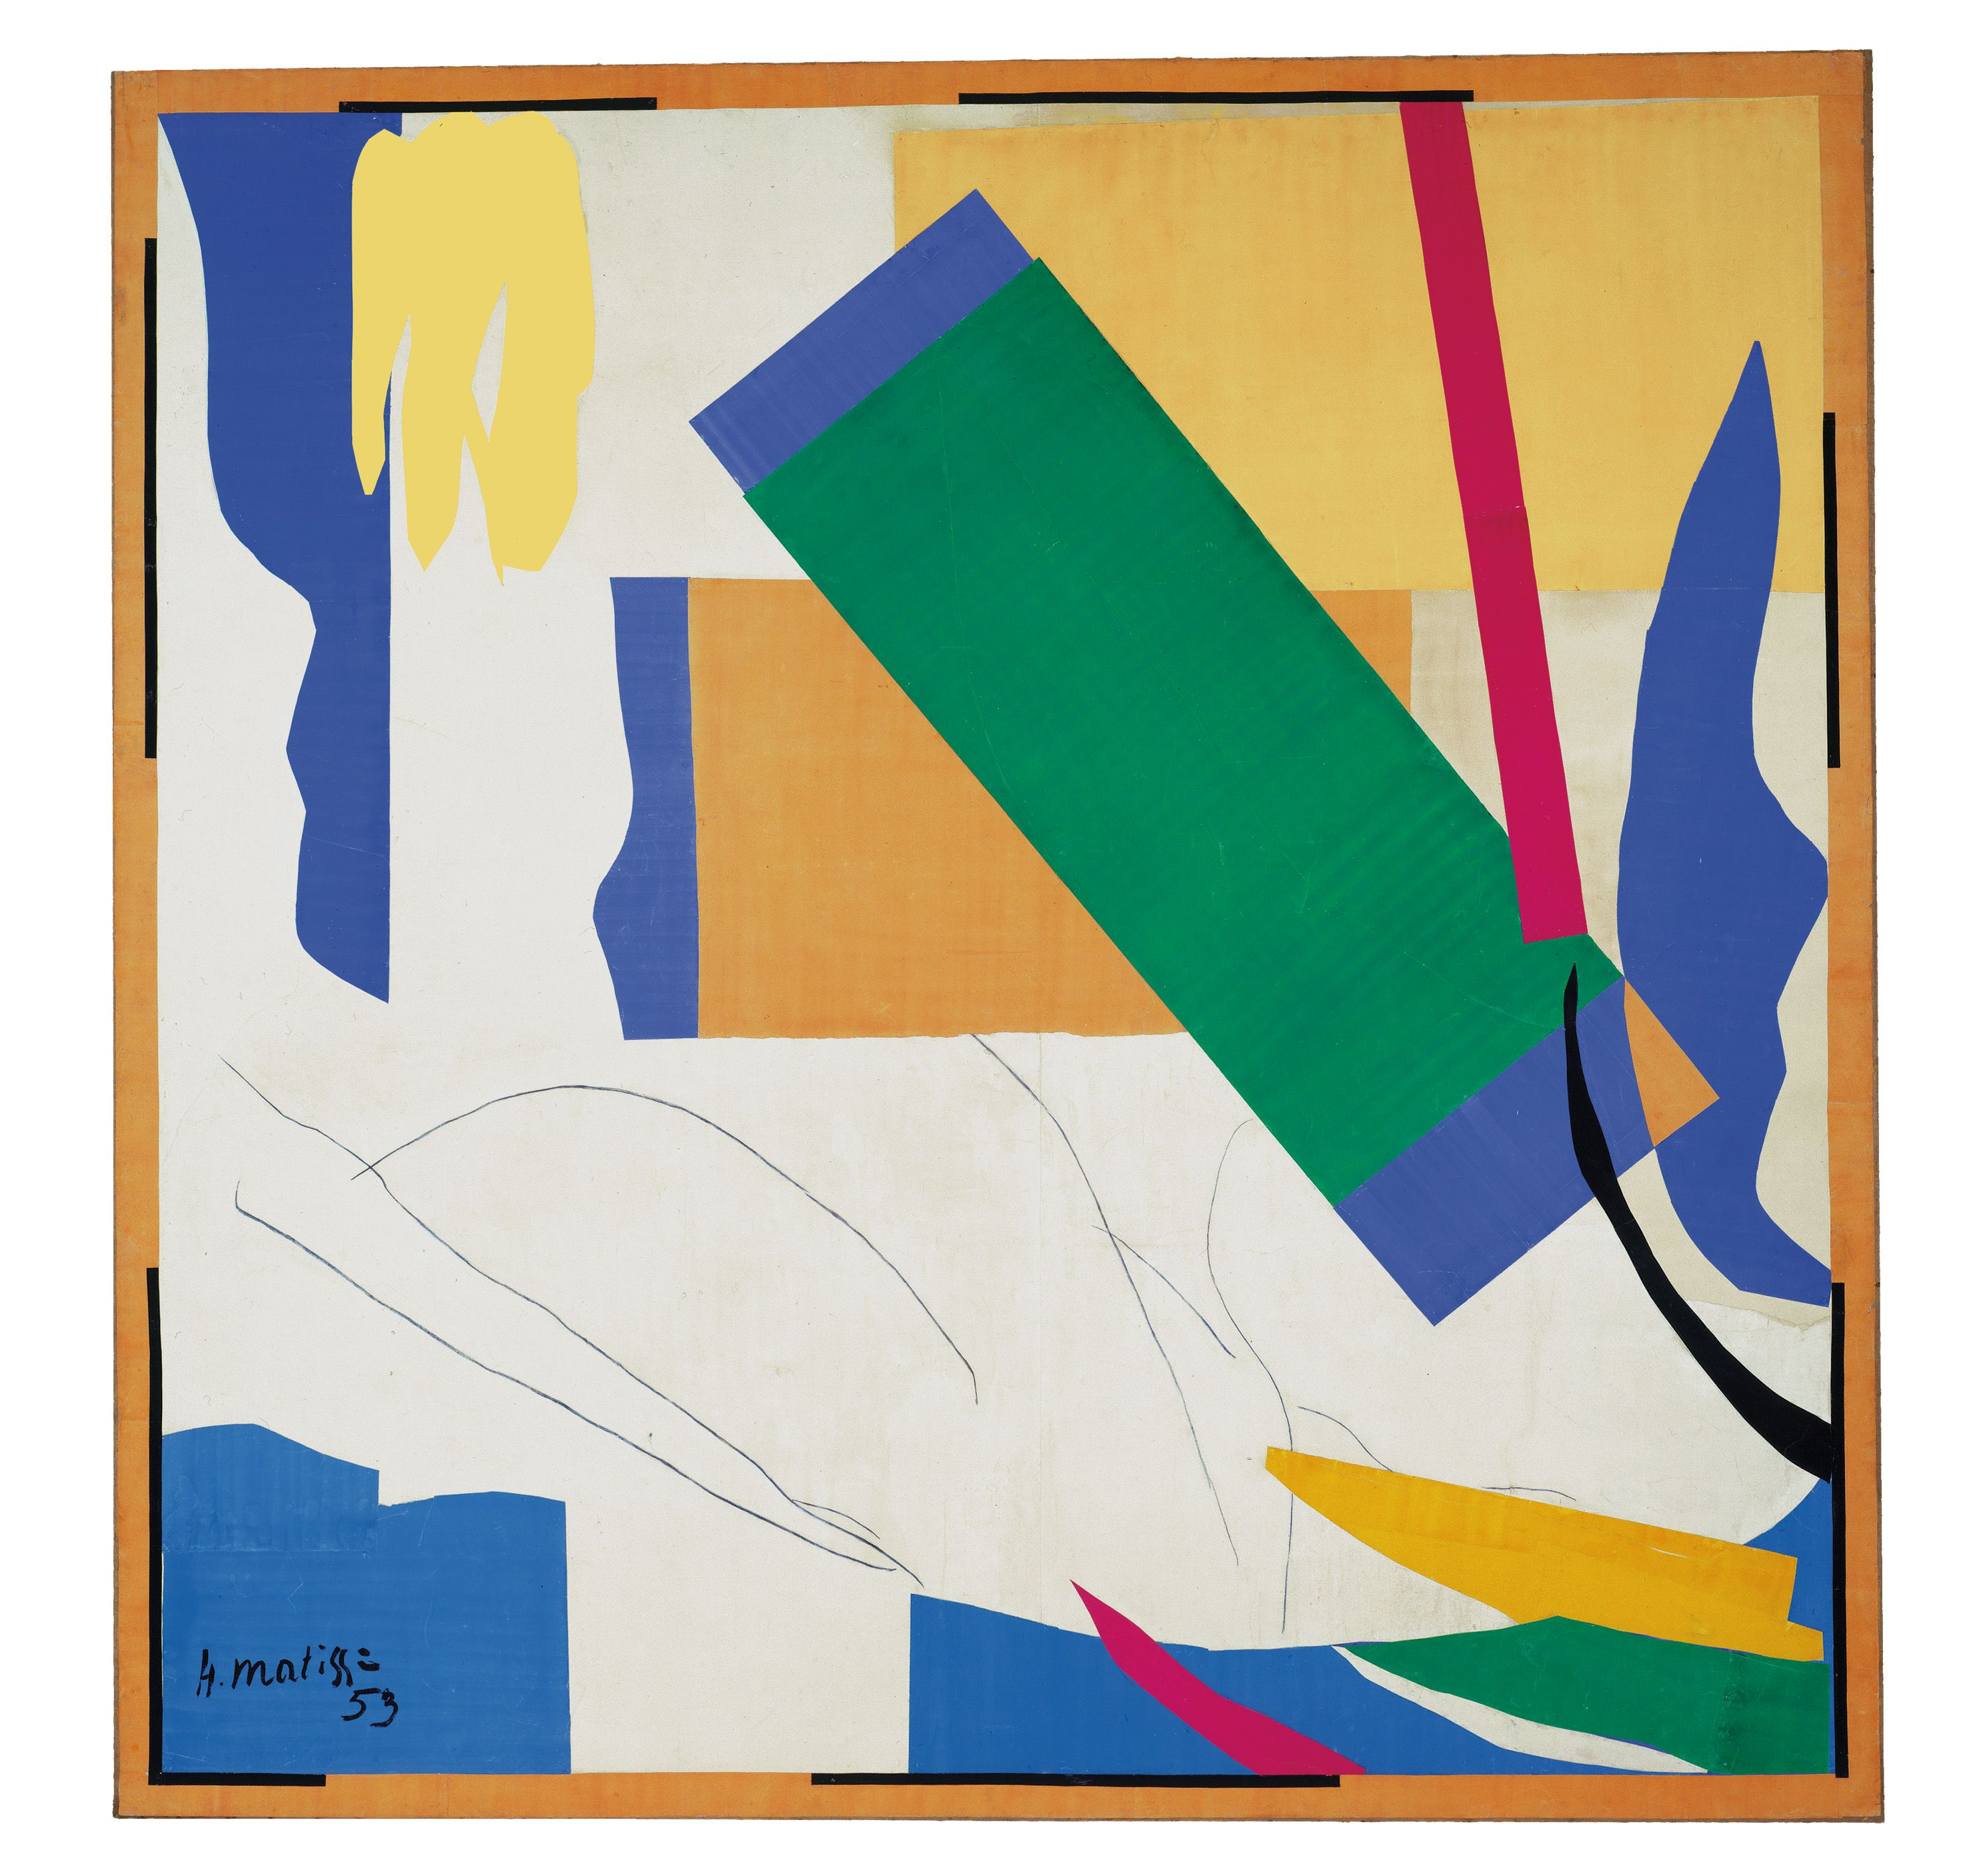 Matisse's Cut-Outs at the Tate Modern #goopsee